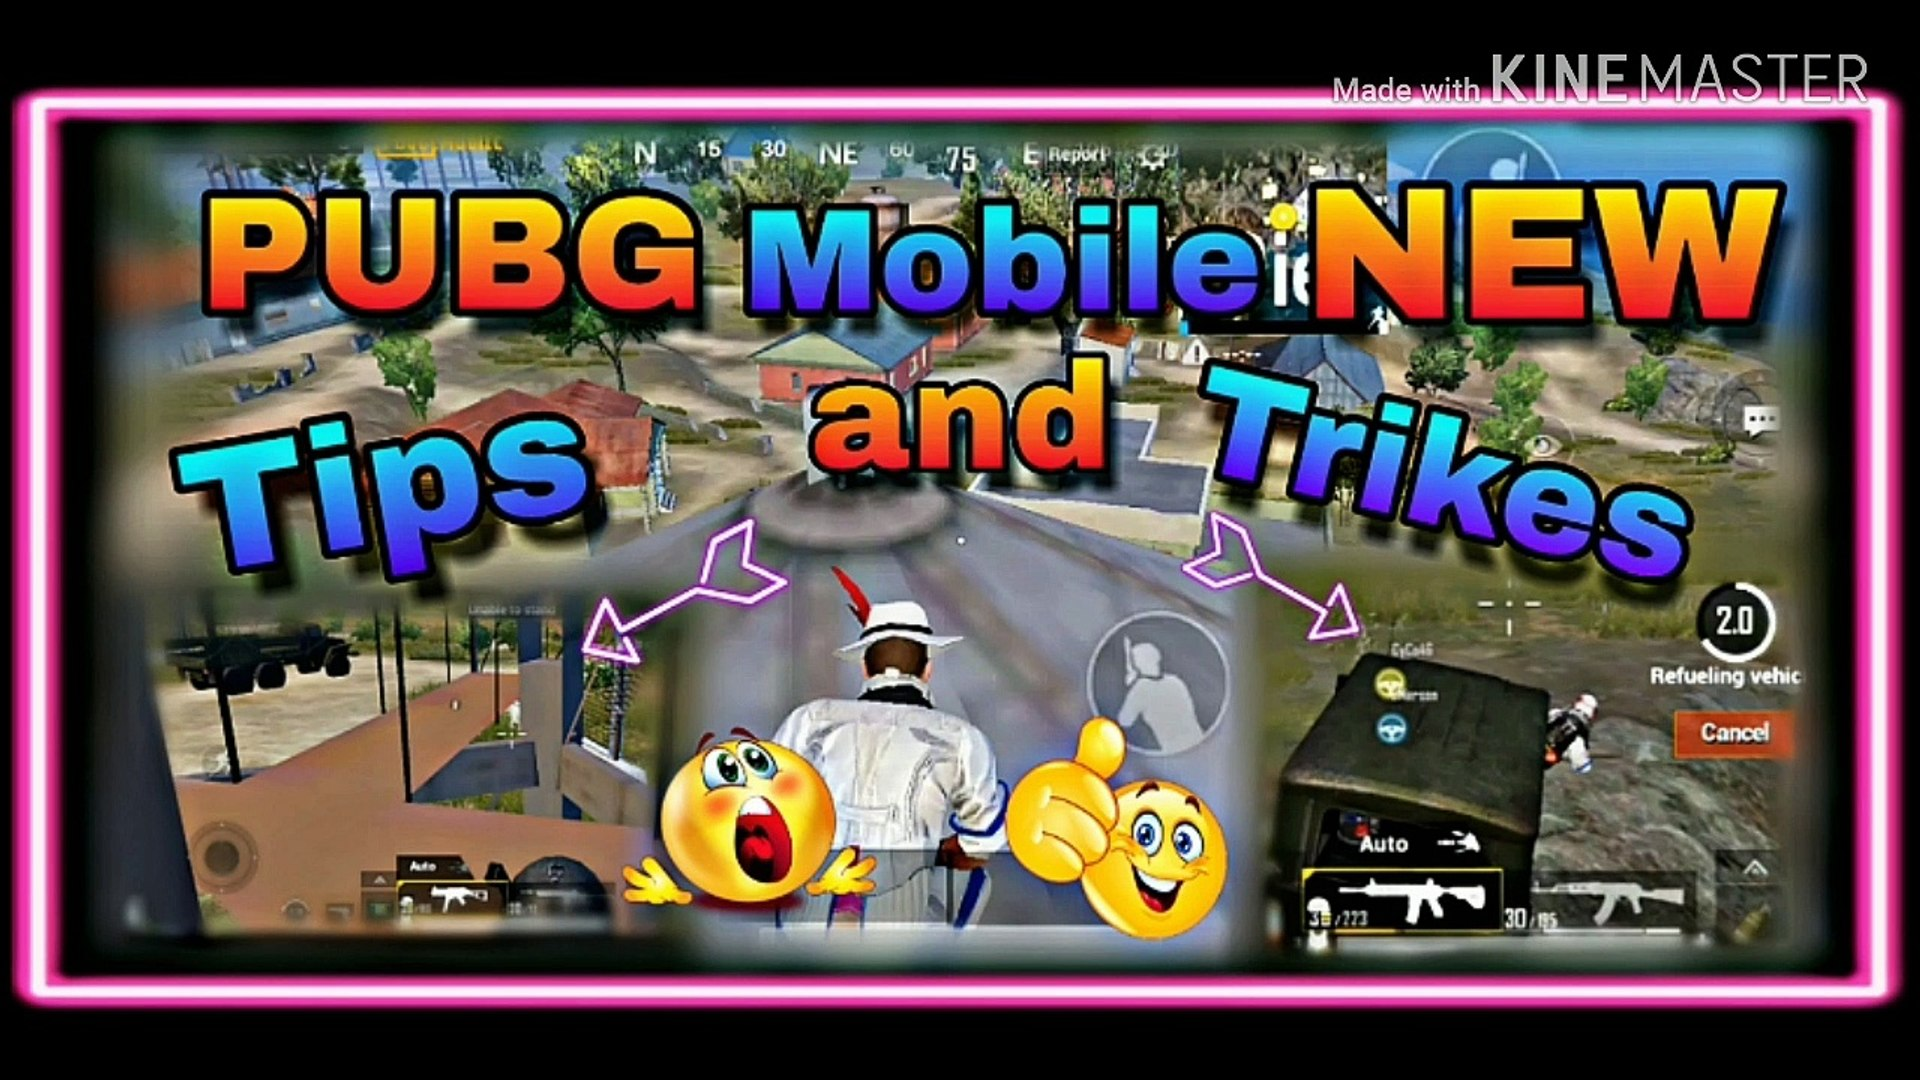 Pubg mobile new tips and tricks ||climb on home and best hiding spot||